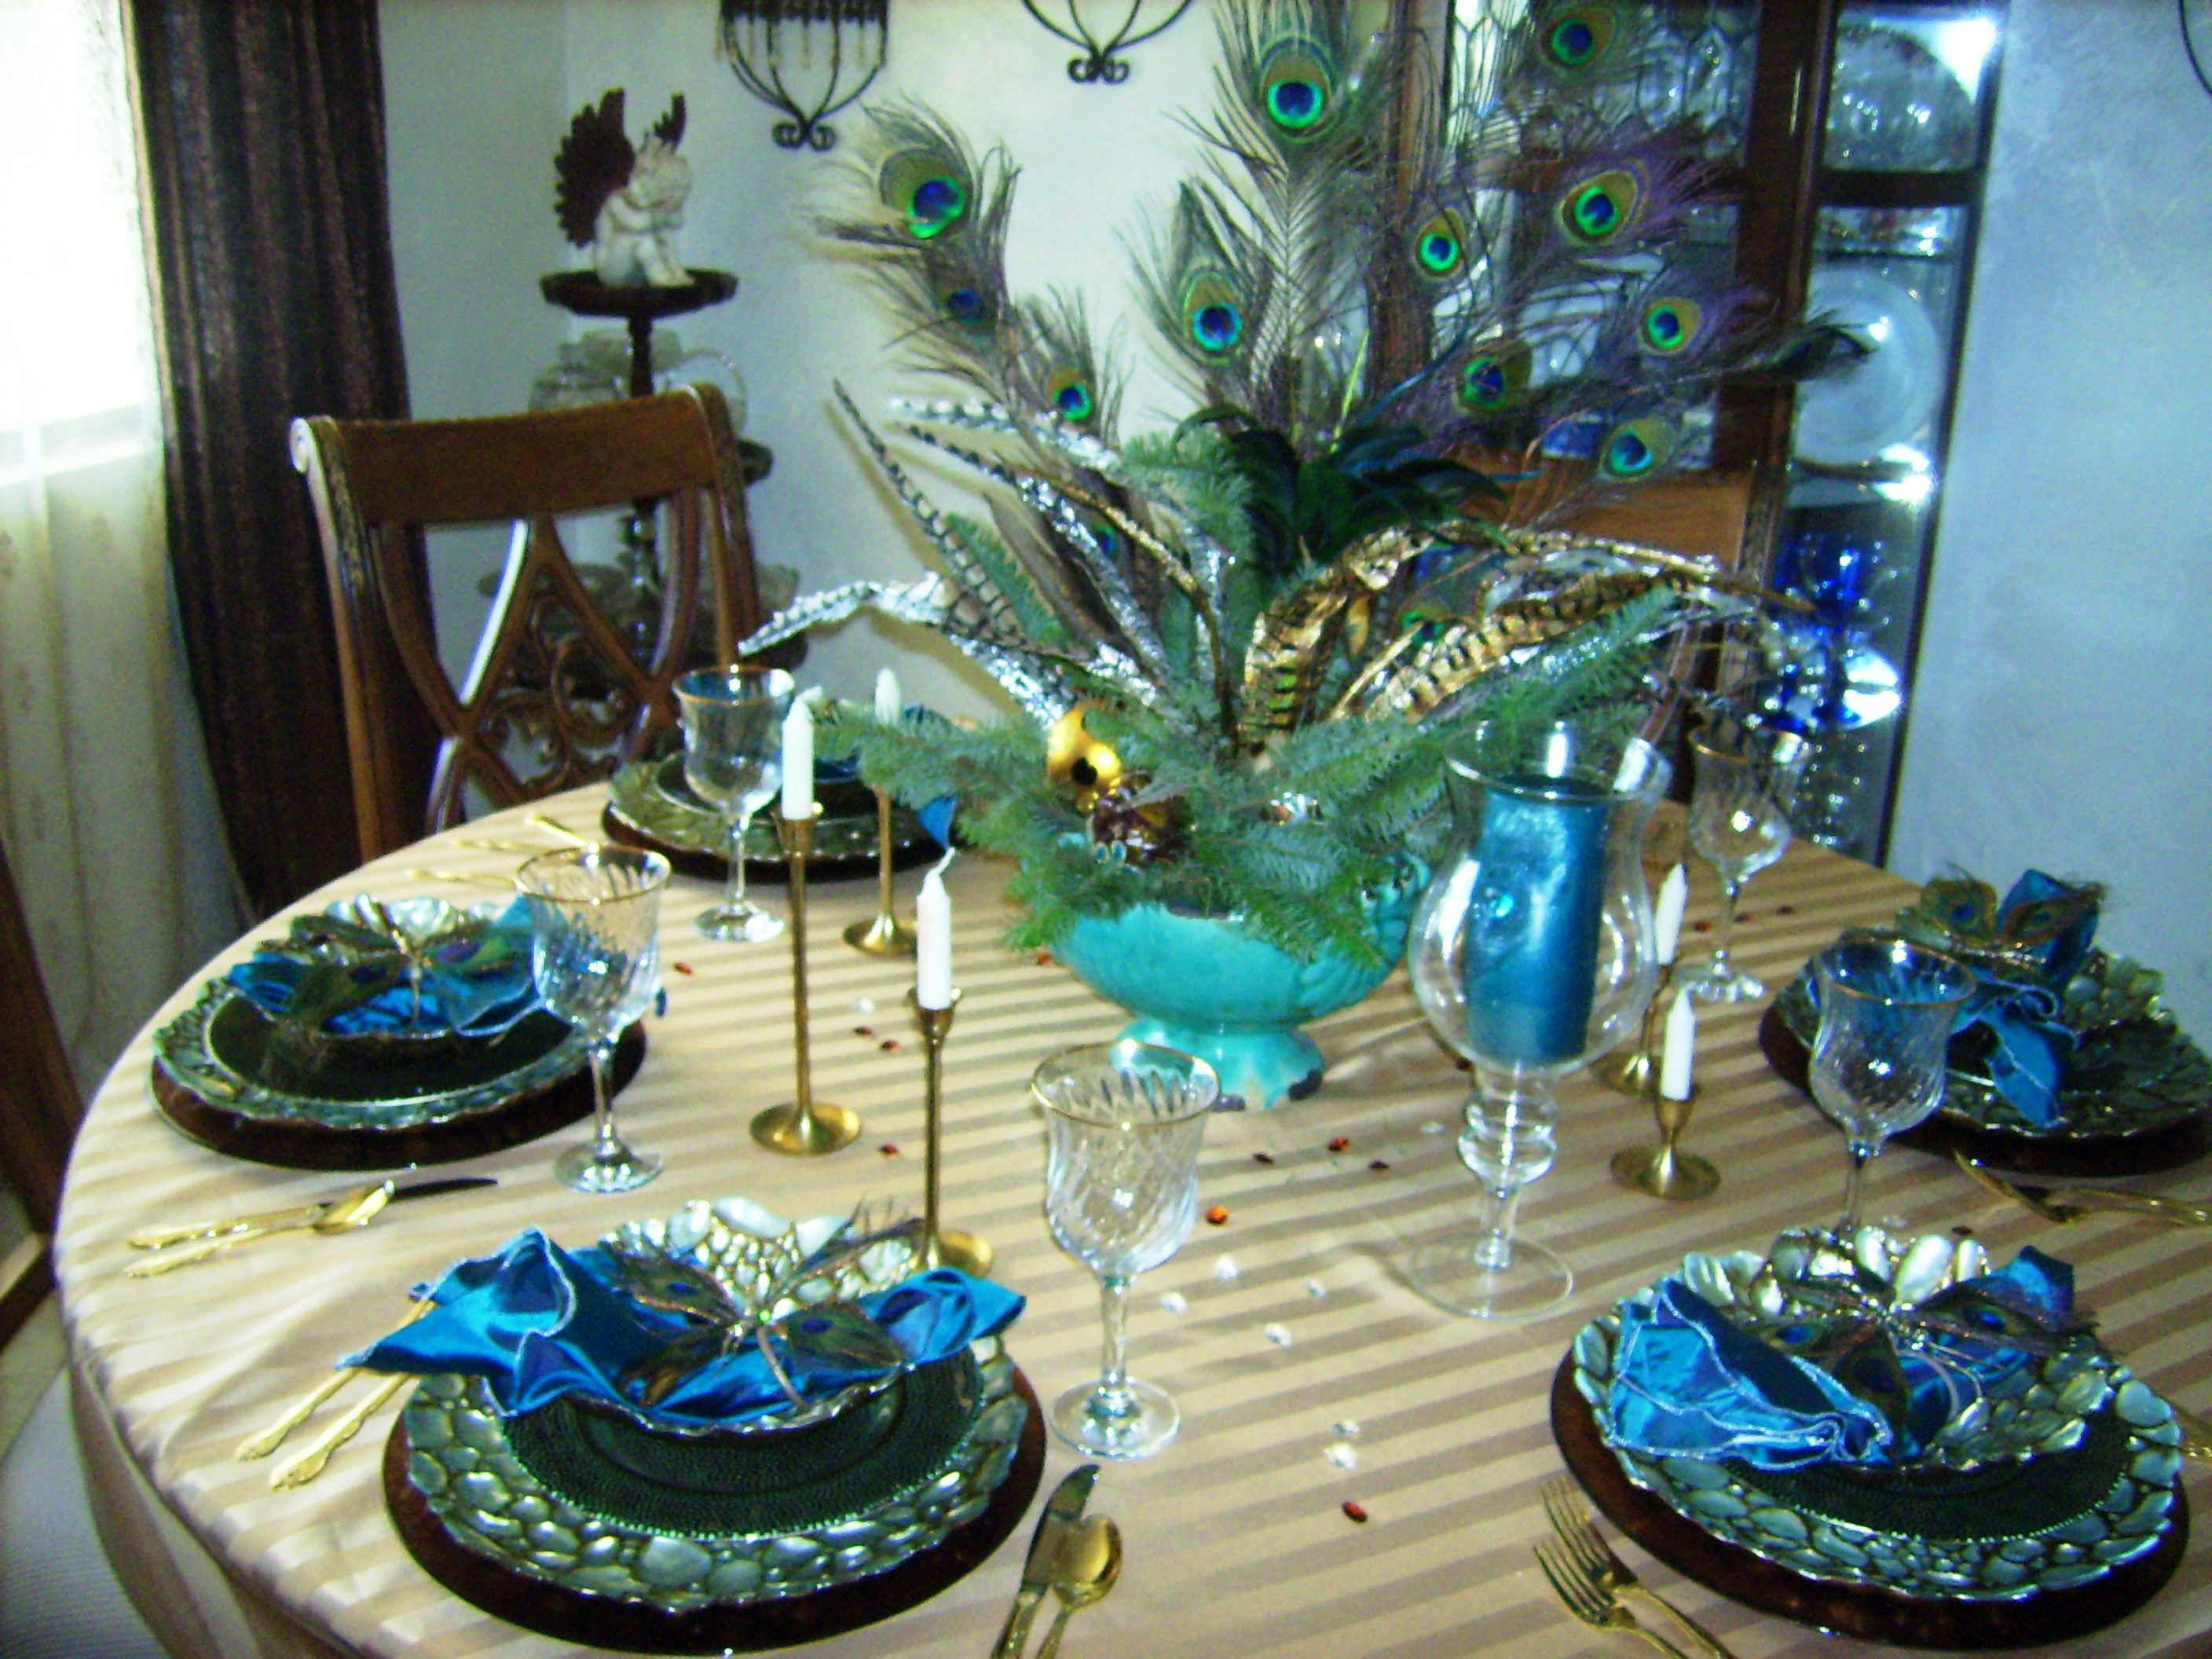 Peacock Tablesetting Peacock Tablesetting Dishes Entertaining Table Settings Peacock Decor Beautiful Home Designs